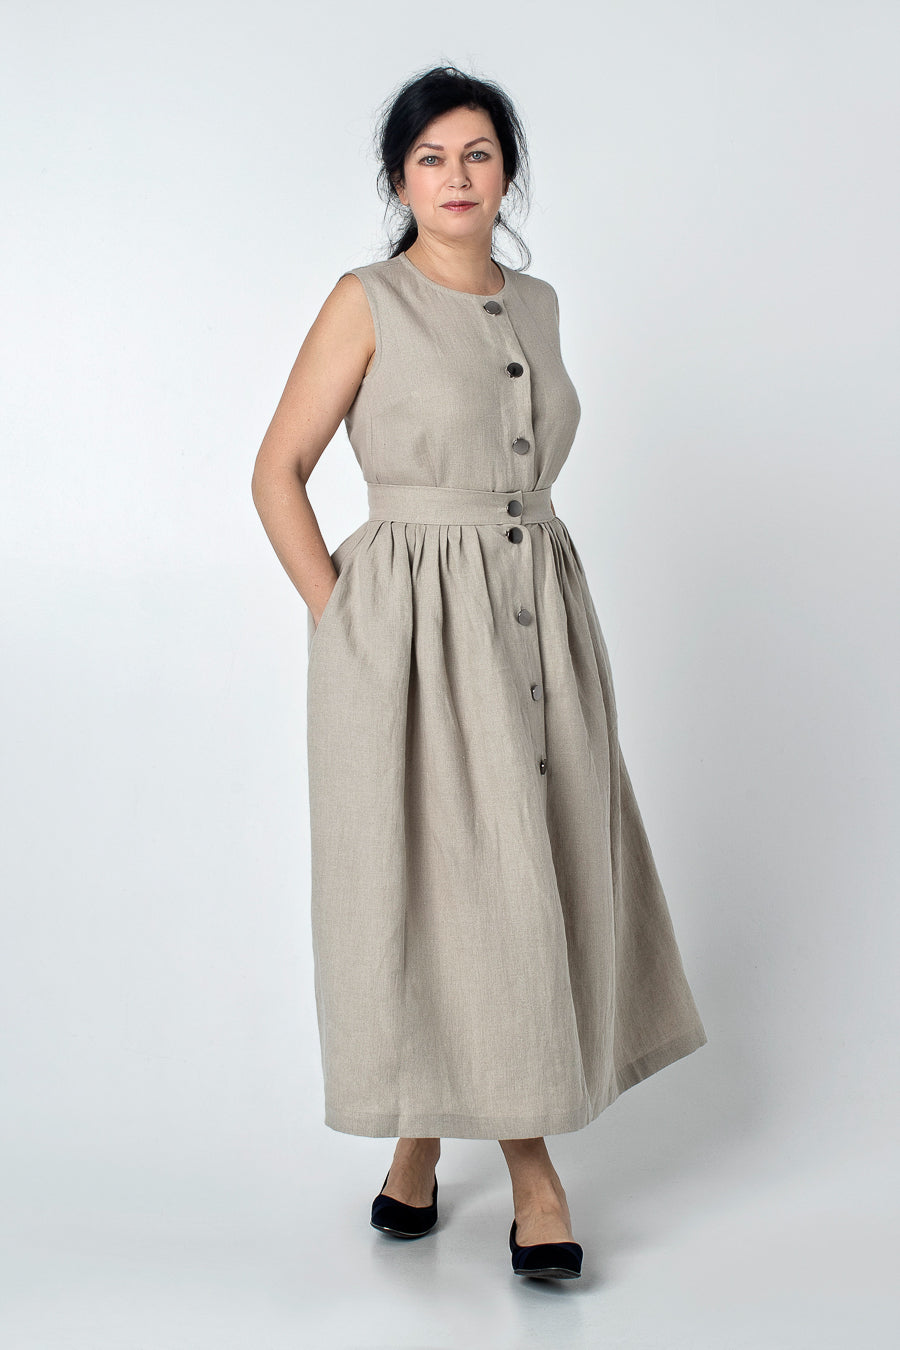 KINAYO | Sleeveless linen blouse with buttons